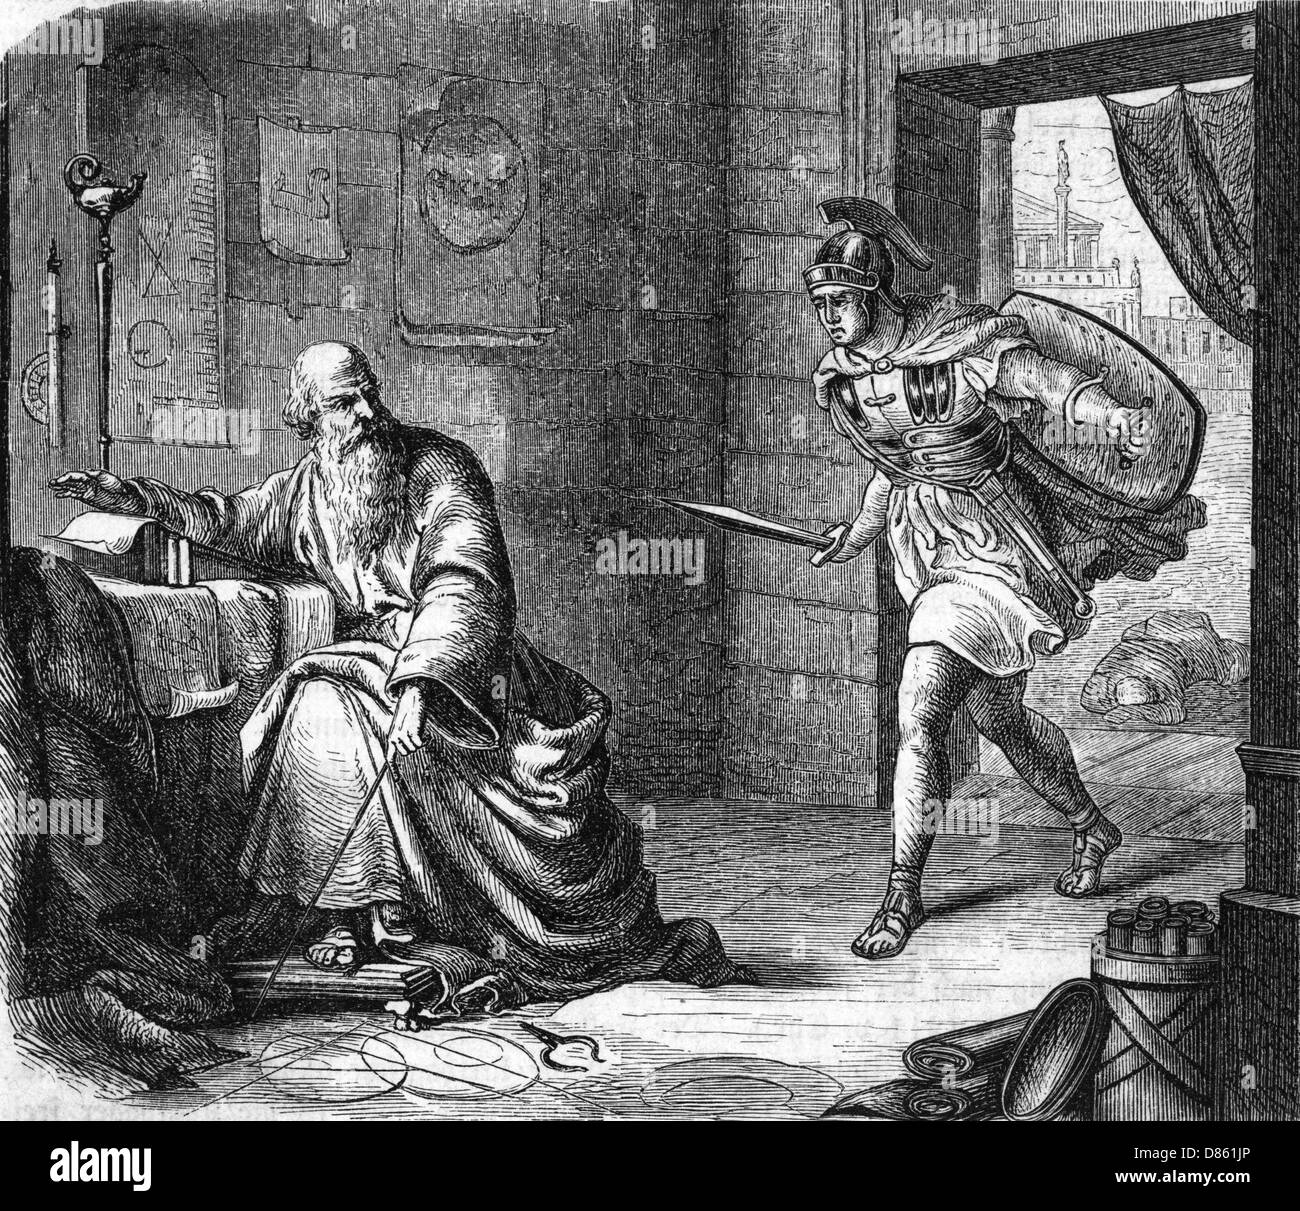 Archimedes About To Be Killed By A Roman Soldier - Stock Image